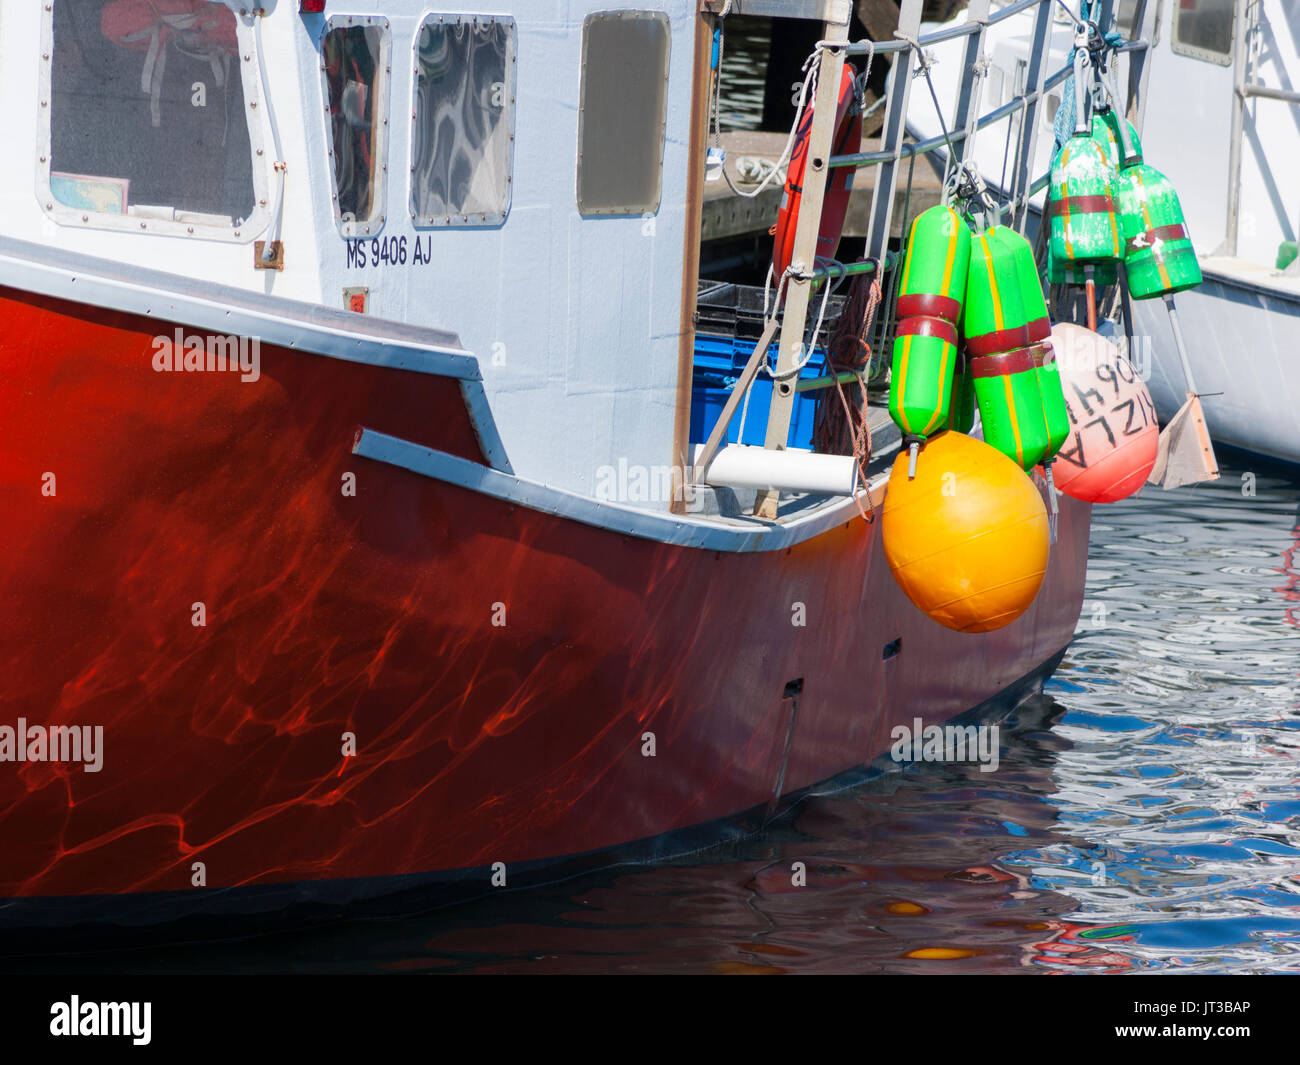 Buoys and fenders hanging on the side of a lobster boat. Gloucester Harbor, Cape Ann, Massachusetts. - Stock Image